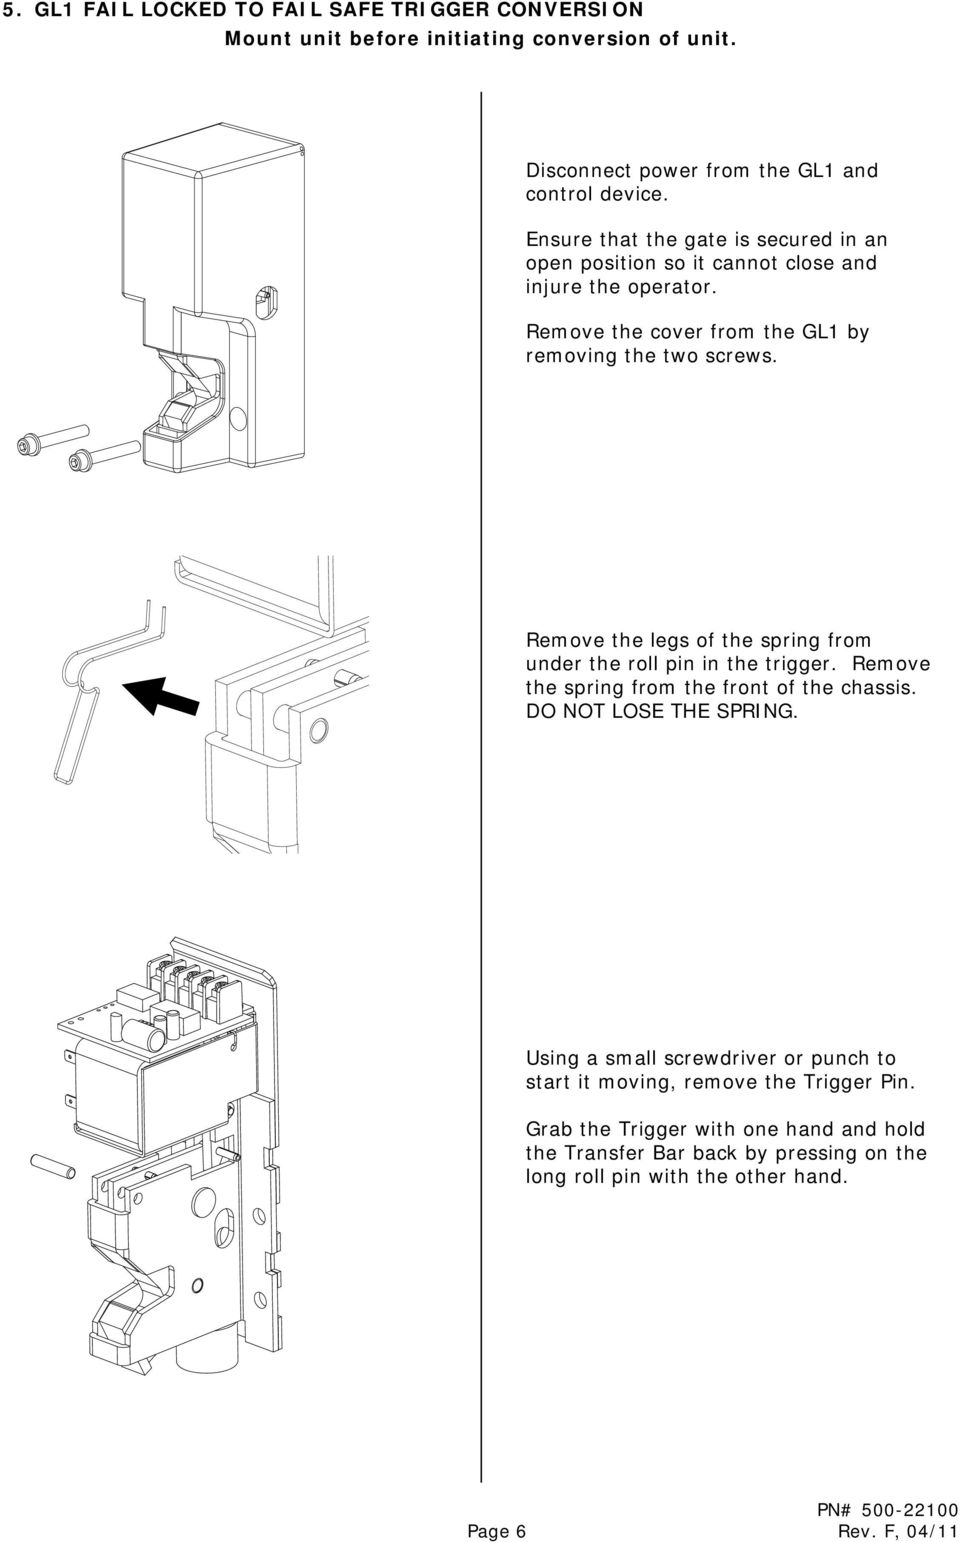 Remove the legs of the spring from under the roll pin in the trigger. Remove the spring from the front of the chassis. DO NOT LOSE THE SPRING.